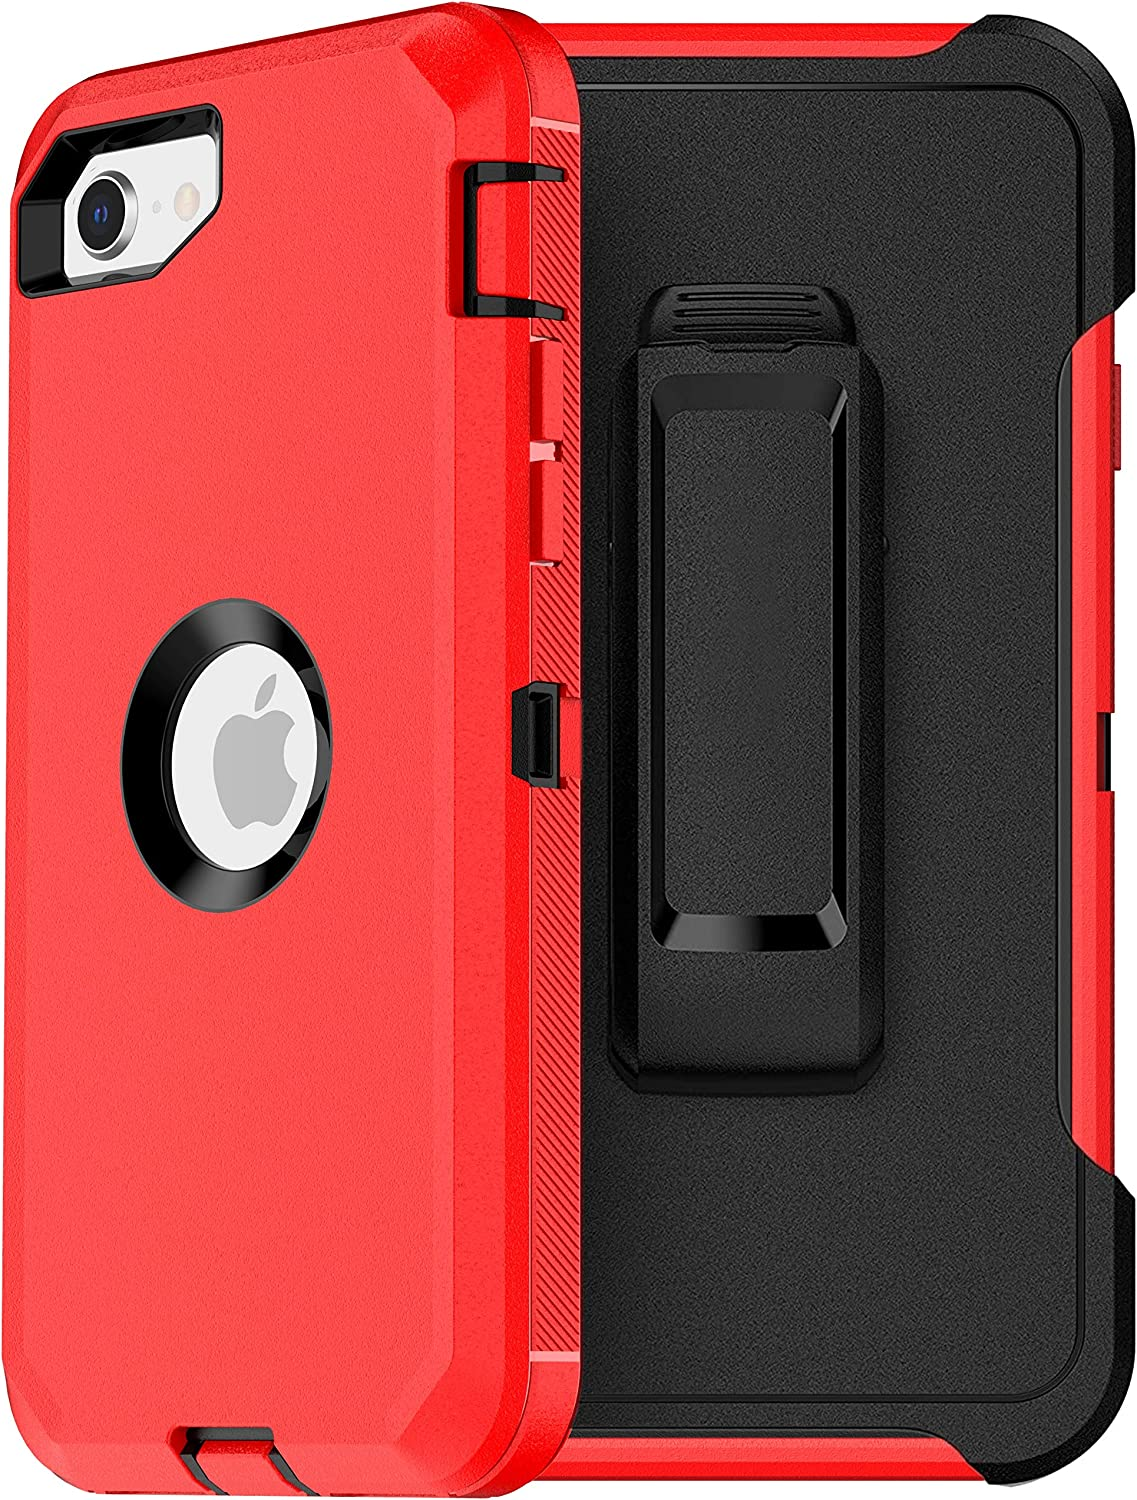 MXX iPhone SE 2020 Heavy Duty Protective Case with Screen Protector [3 Layers] Rugged Rubber Shockproof Protection Cover & Rotating 360 Degree Belt Clip for Apple iPhone SE 2020 (Red/Black)